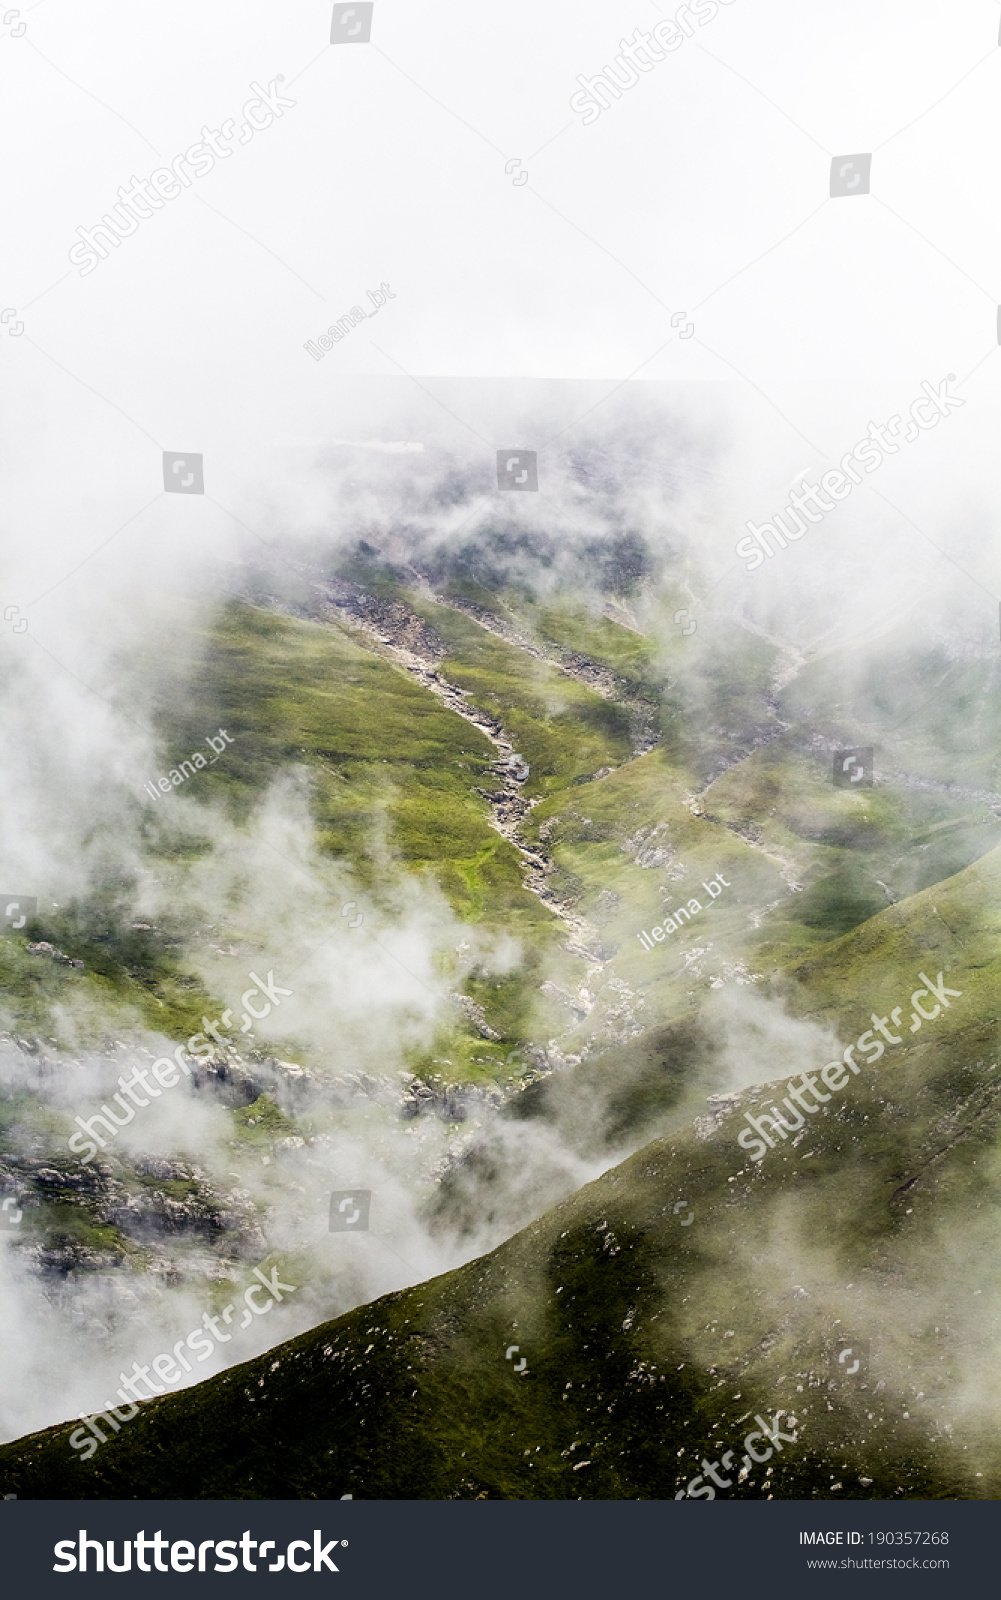 Landscape from Bucegi Mountains, part of Southern Carpathians in Romania in a very foggy day  #190357268